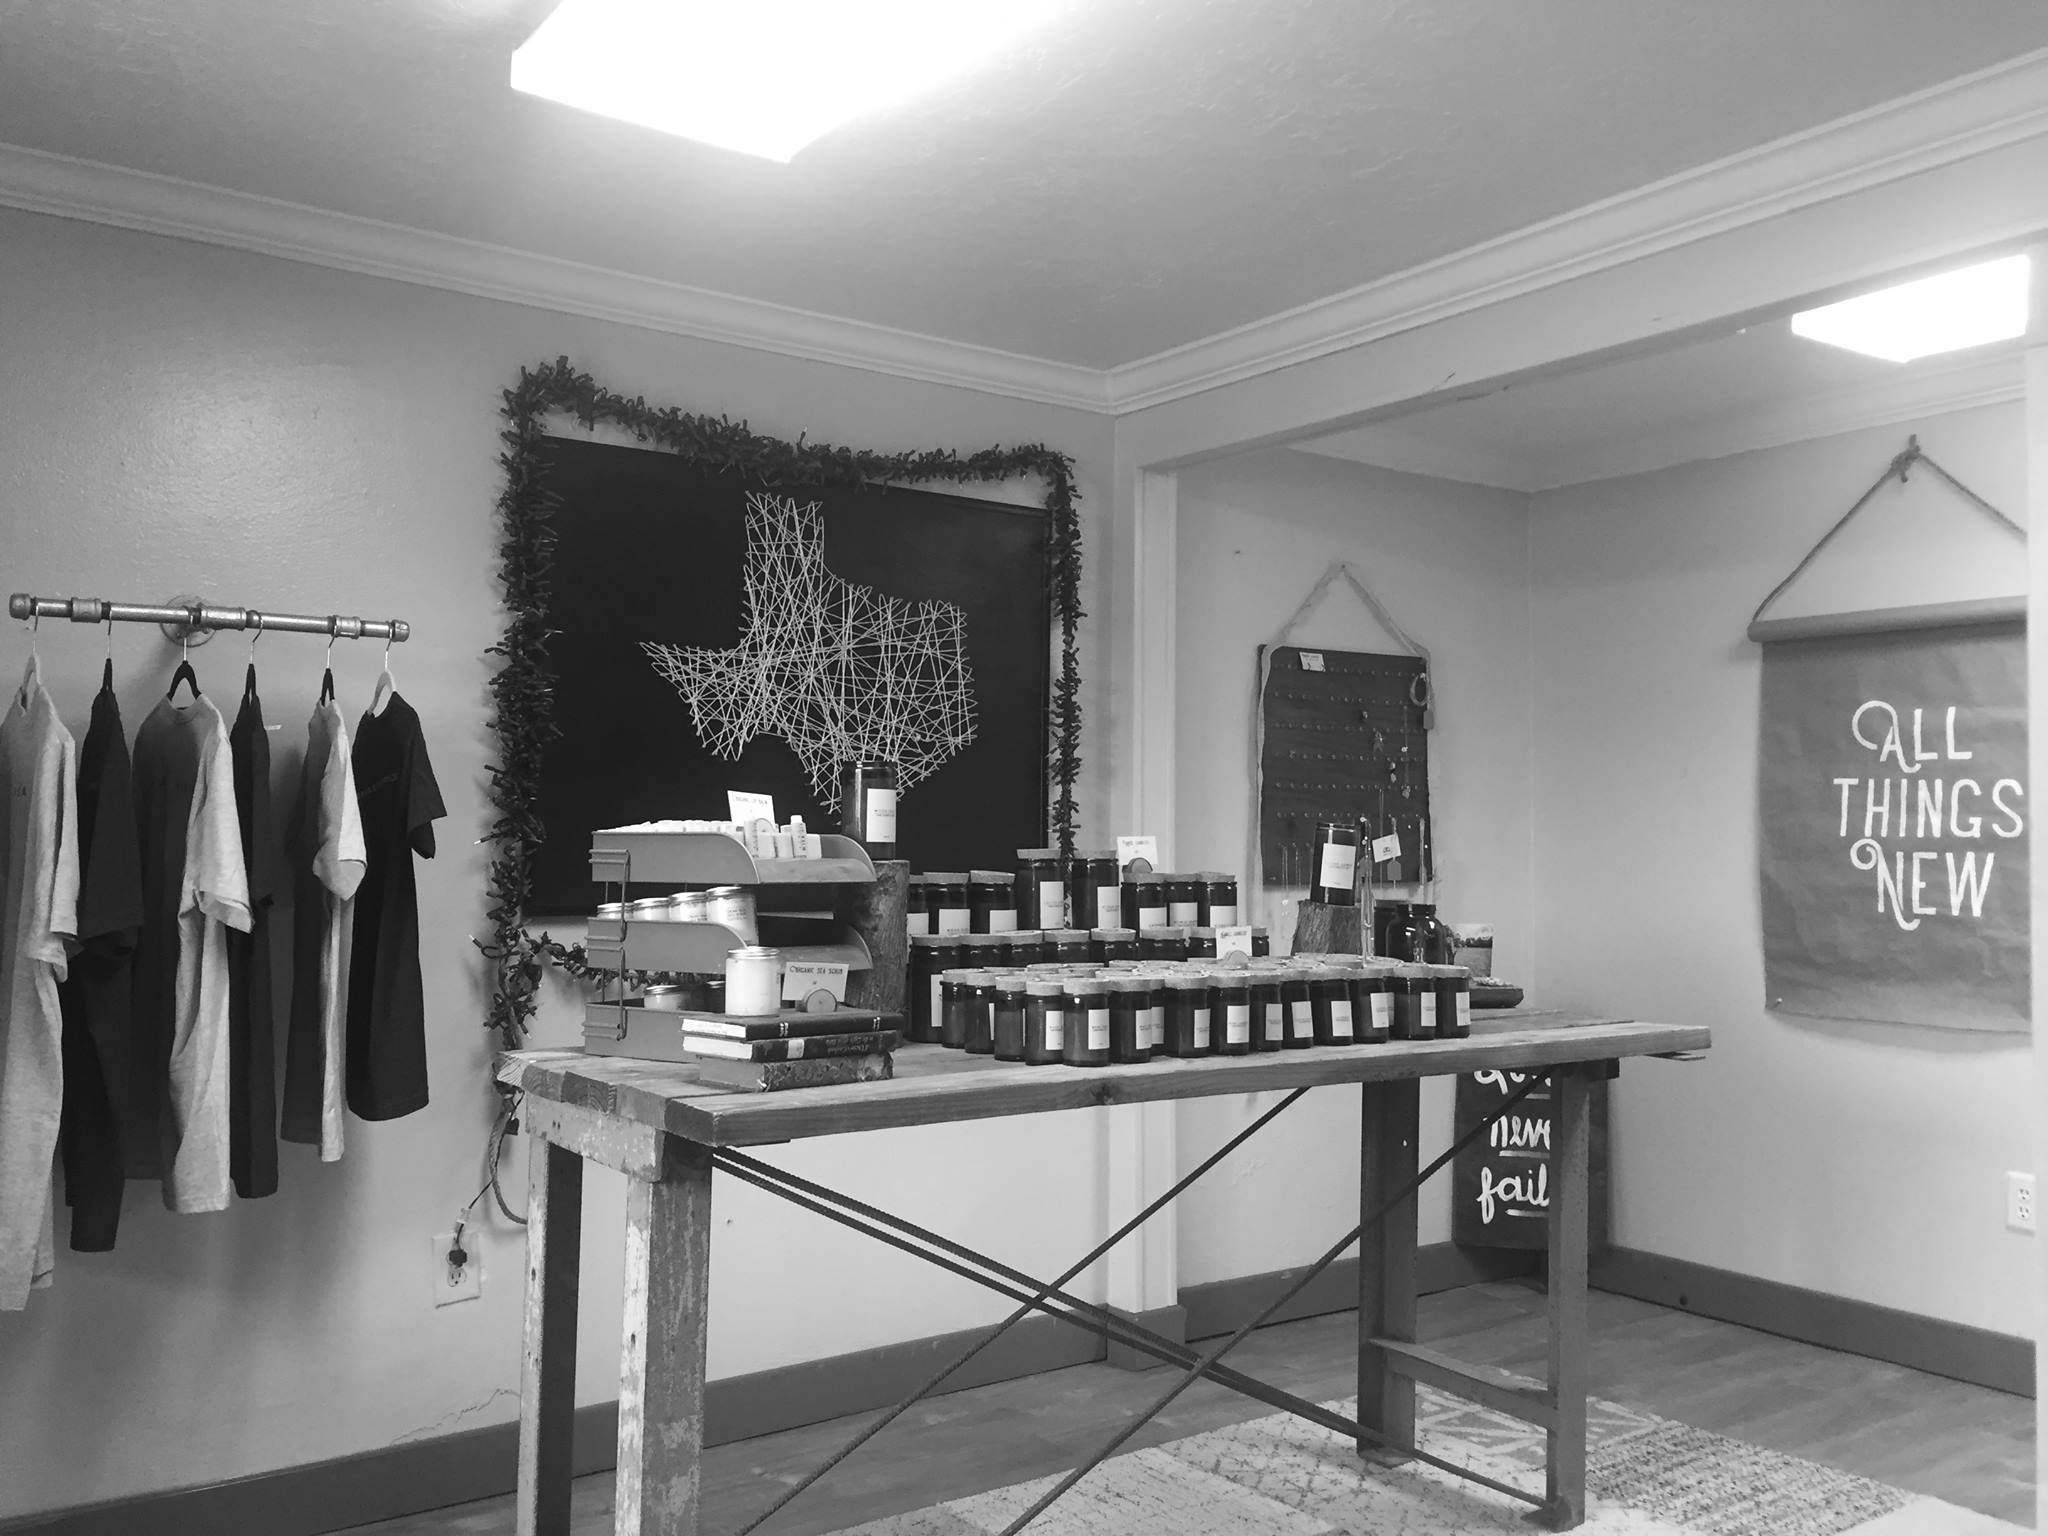 """Our first storefront space in 2017. We started our social enterprise selling products out of a tiny office space at our previous building (used to be a former brothel called """"Angela's Day Spa."""" Today, we are located in the Heights area in Houston, TX at 1135 E. 11th St., Houston, TX 77009."""